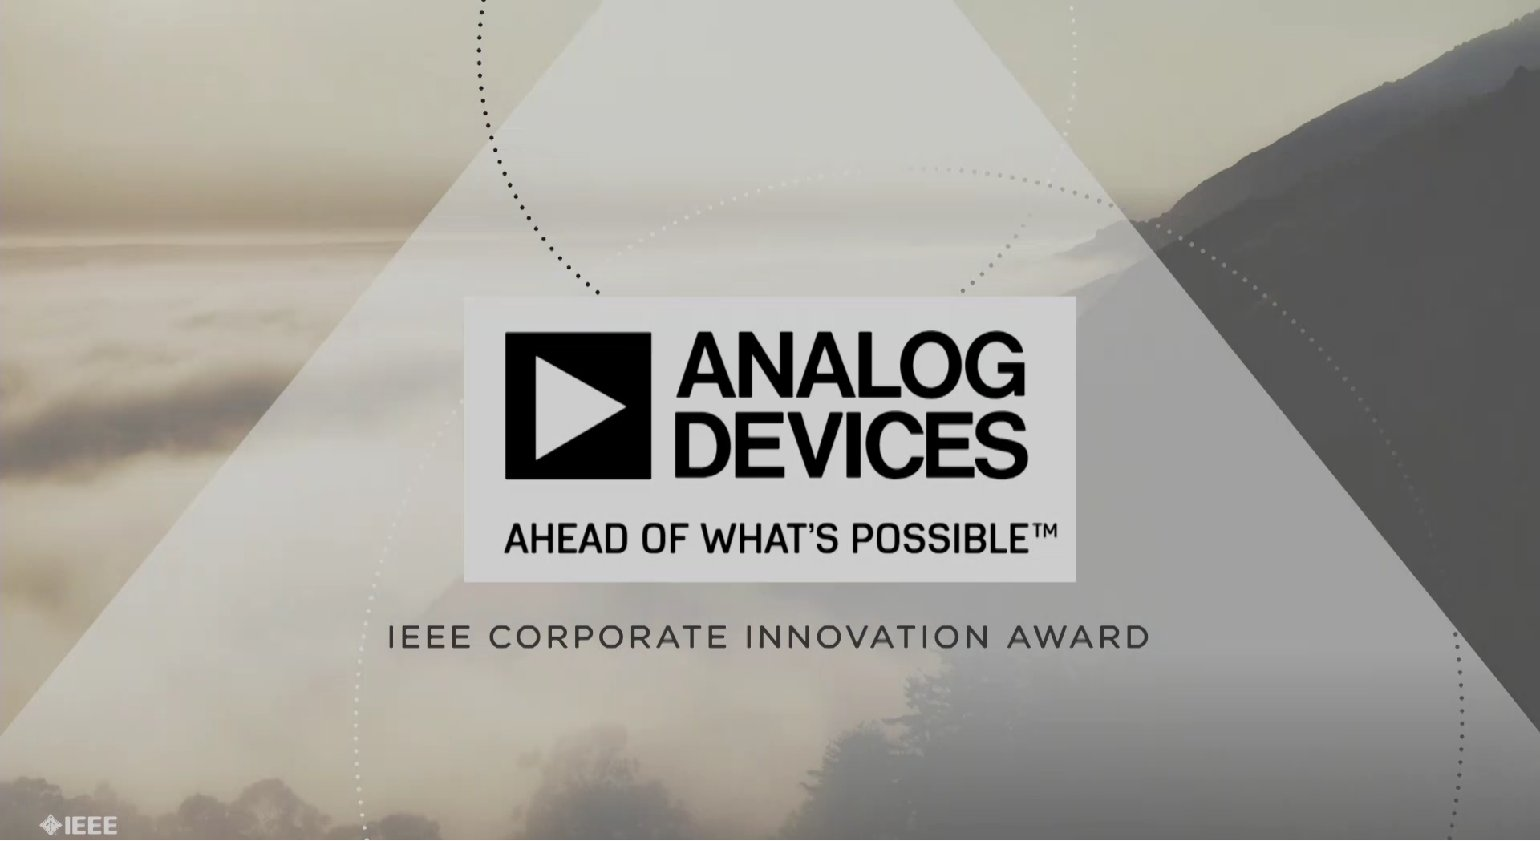 Analog Devices, Inc. accepts the IEEE Corporate Innovation Award - Honors Ceremony 2017